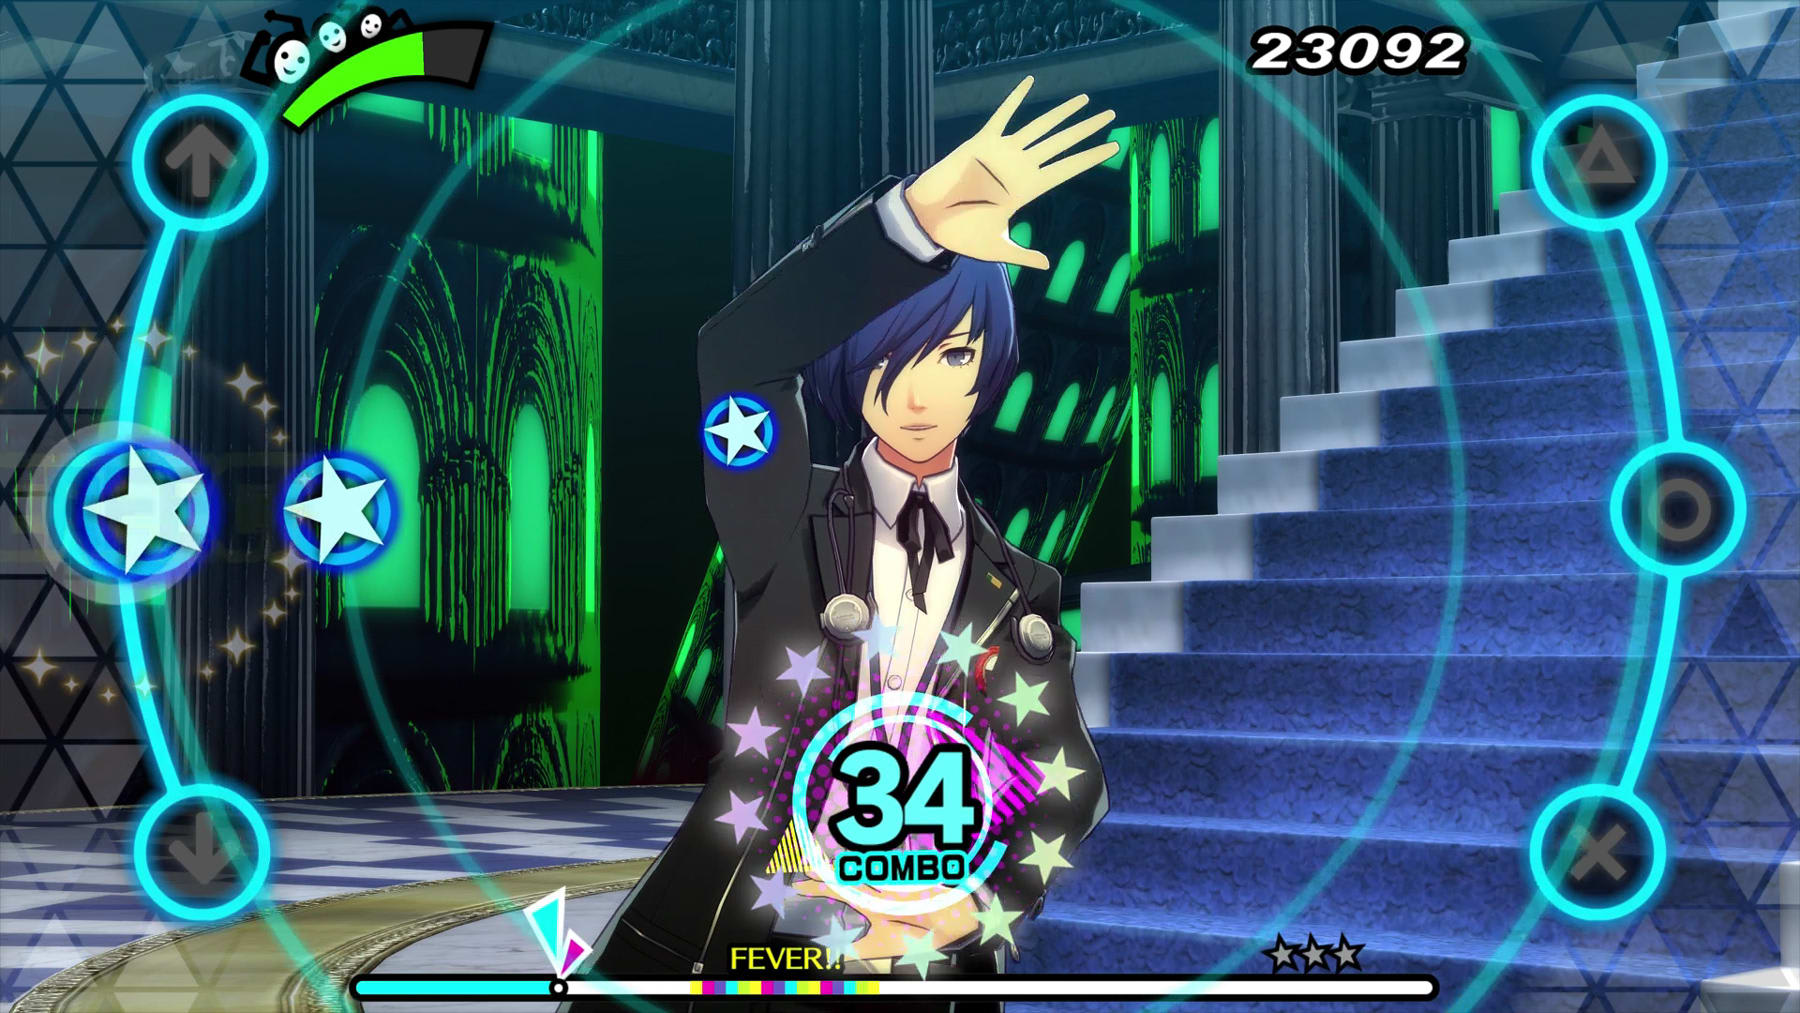 Persona 3: Dancing in Moonlight' damaged my fictional